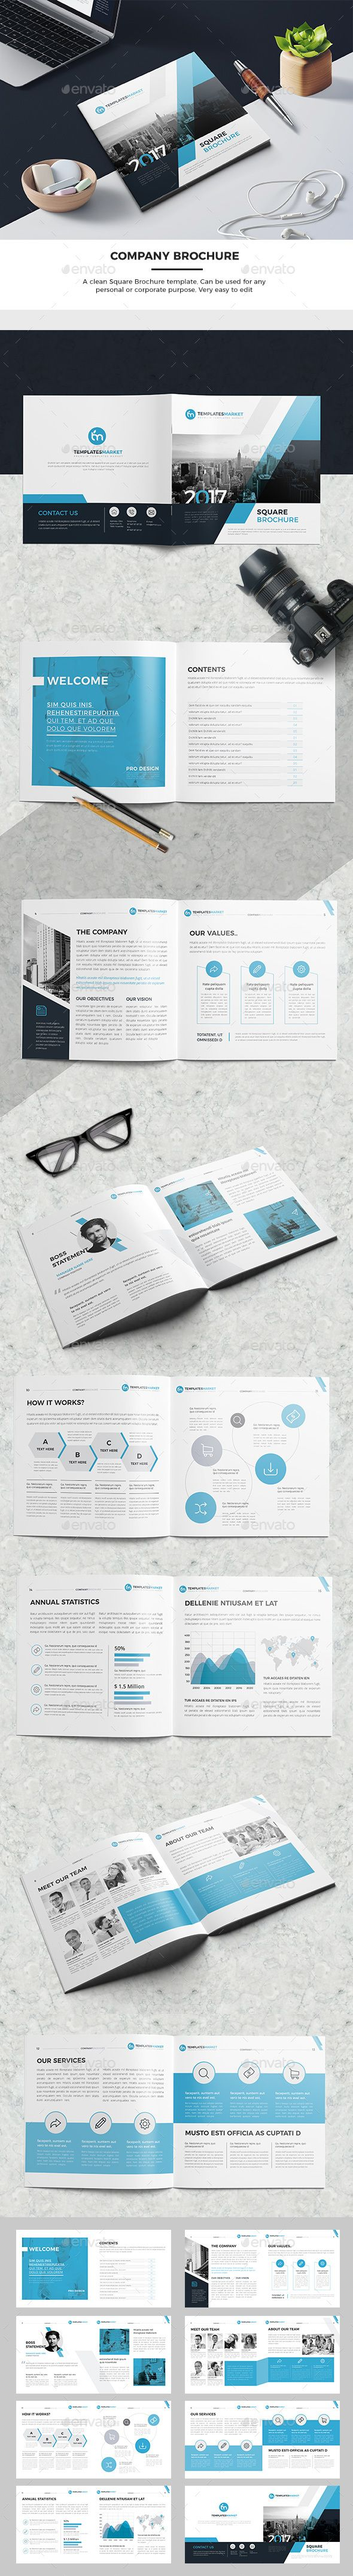 TM Square Company Brochure 16 Pages — InDesign INDD #brief brochure #200x200 • Download ➝ https://graphicriver.net/item/tm-square-company-brochure-16-pages/19552309?ref=pxcr